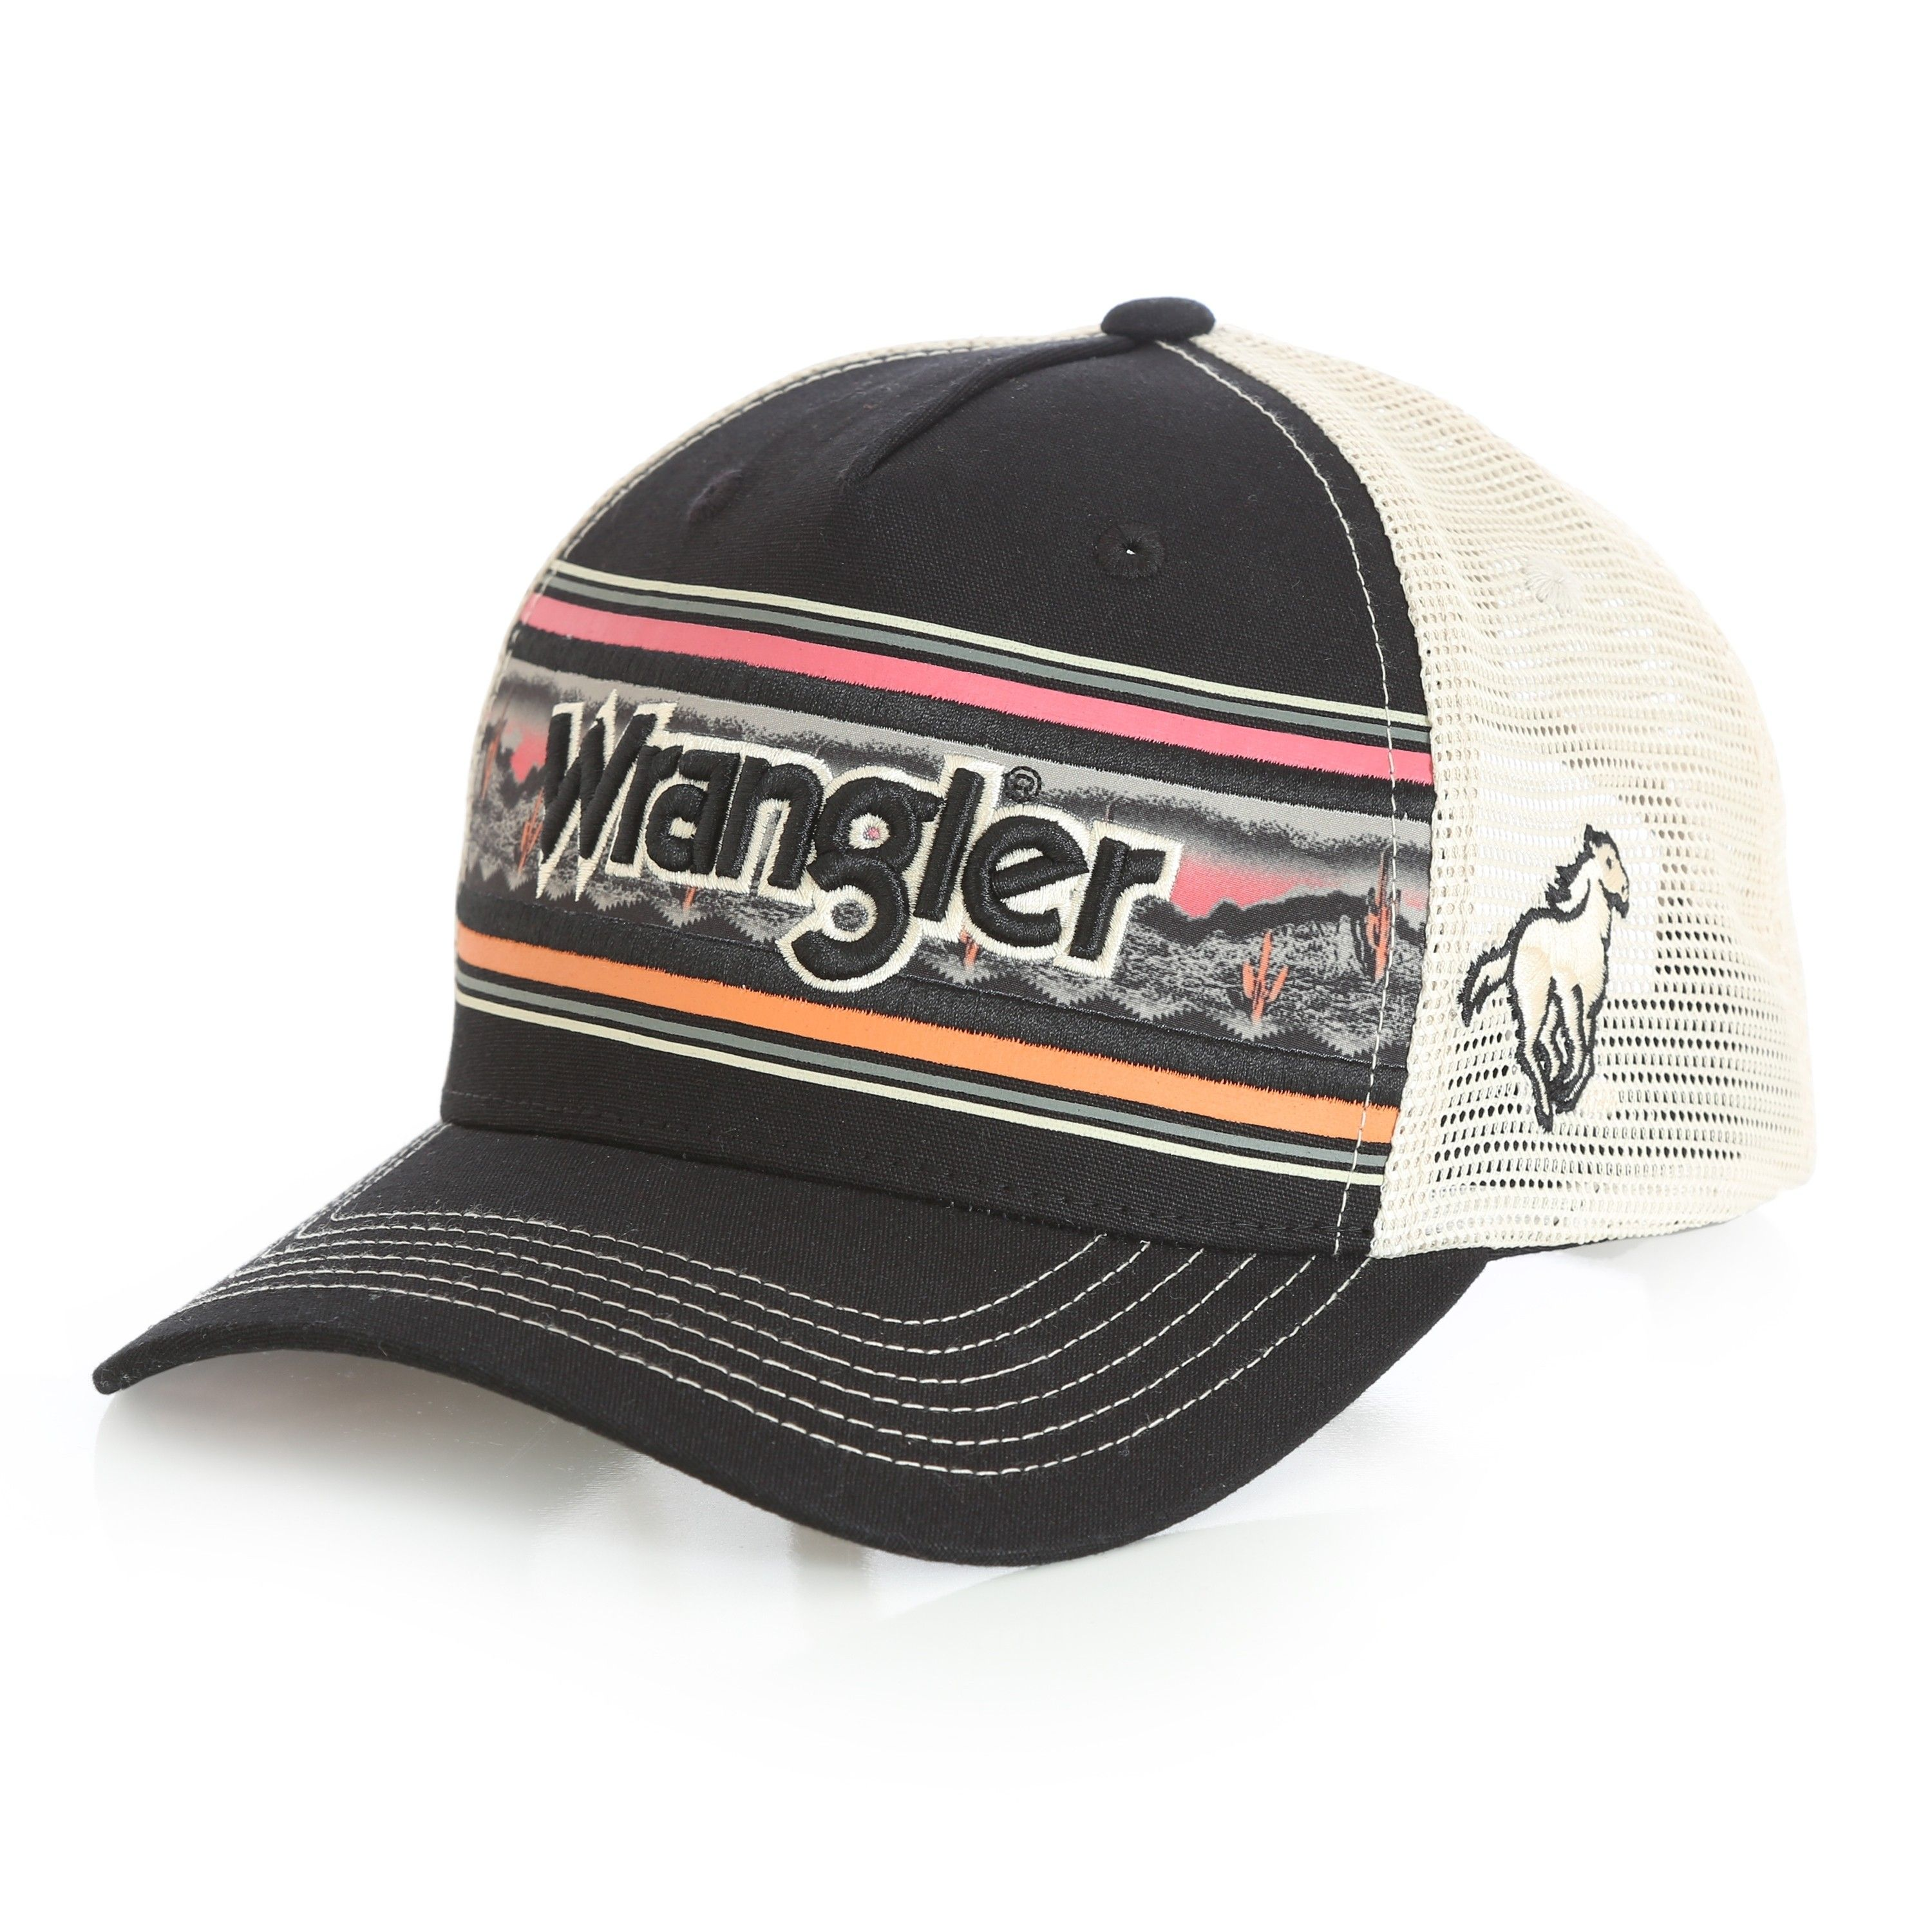 Wrangler Sunset Trucker ball cap style - MWC217M now available at Billy s  Western Wear! e82b04a5ae4